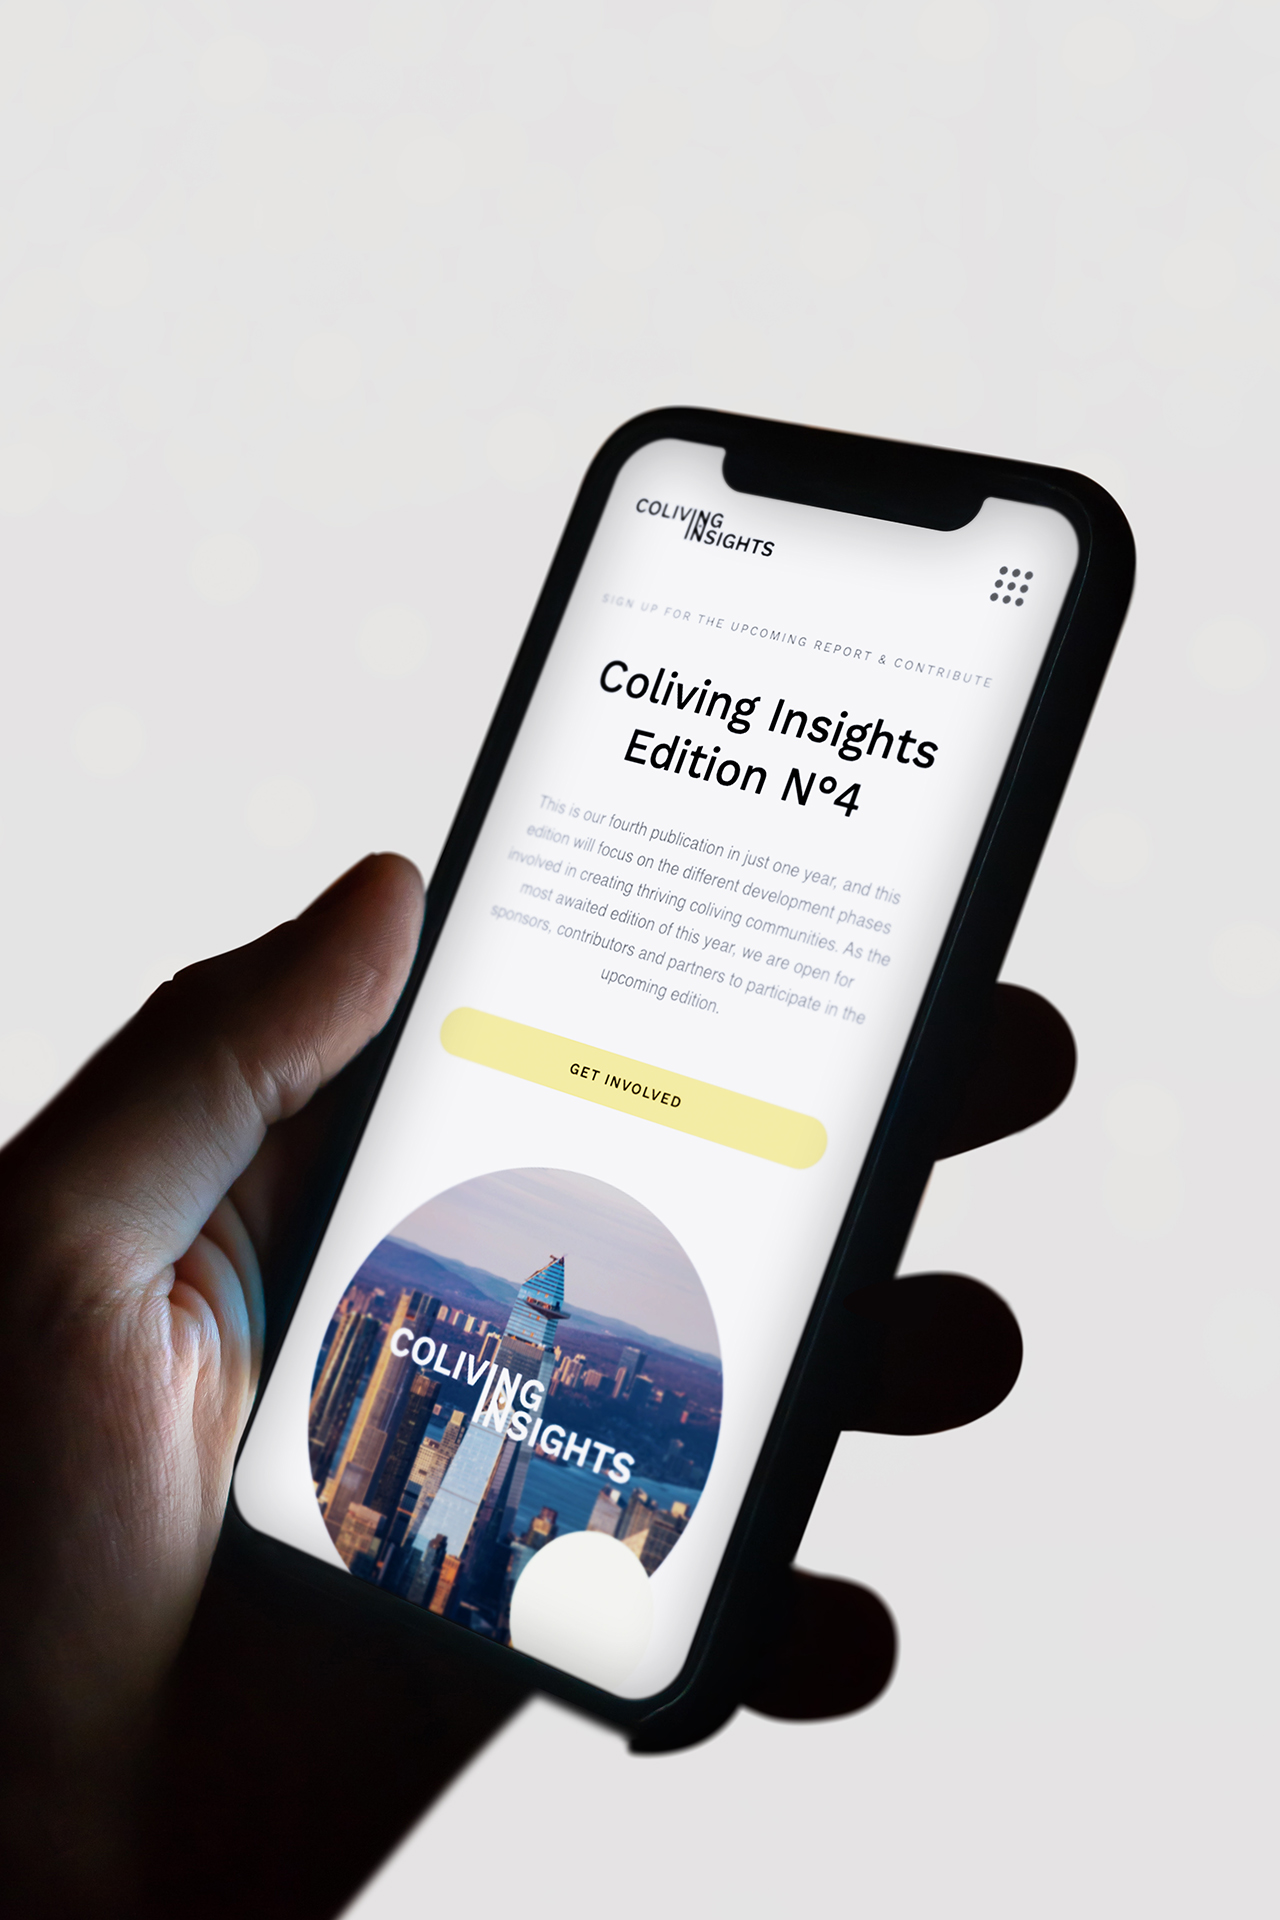 Iphone mockup of mobile version of the Coliving Insights website by Spatial Experience